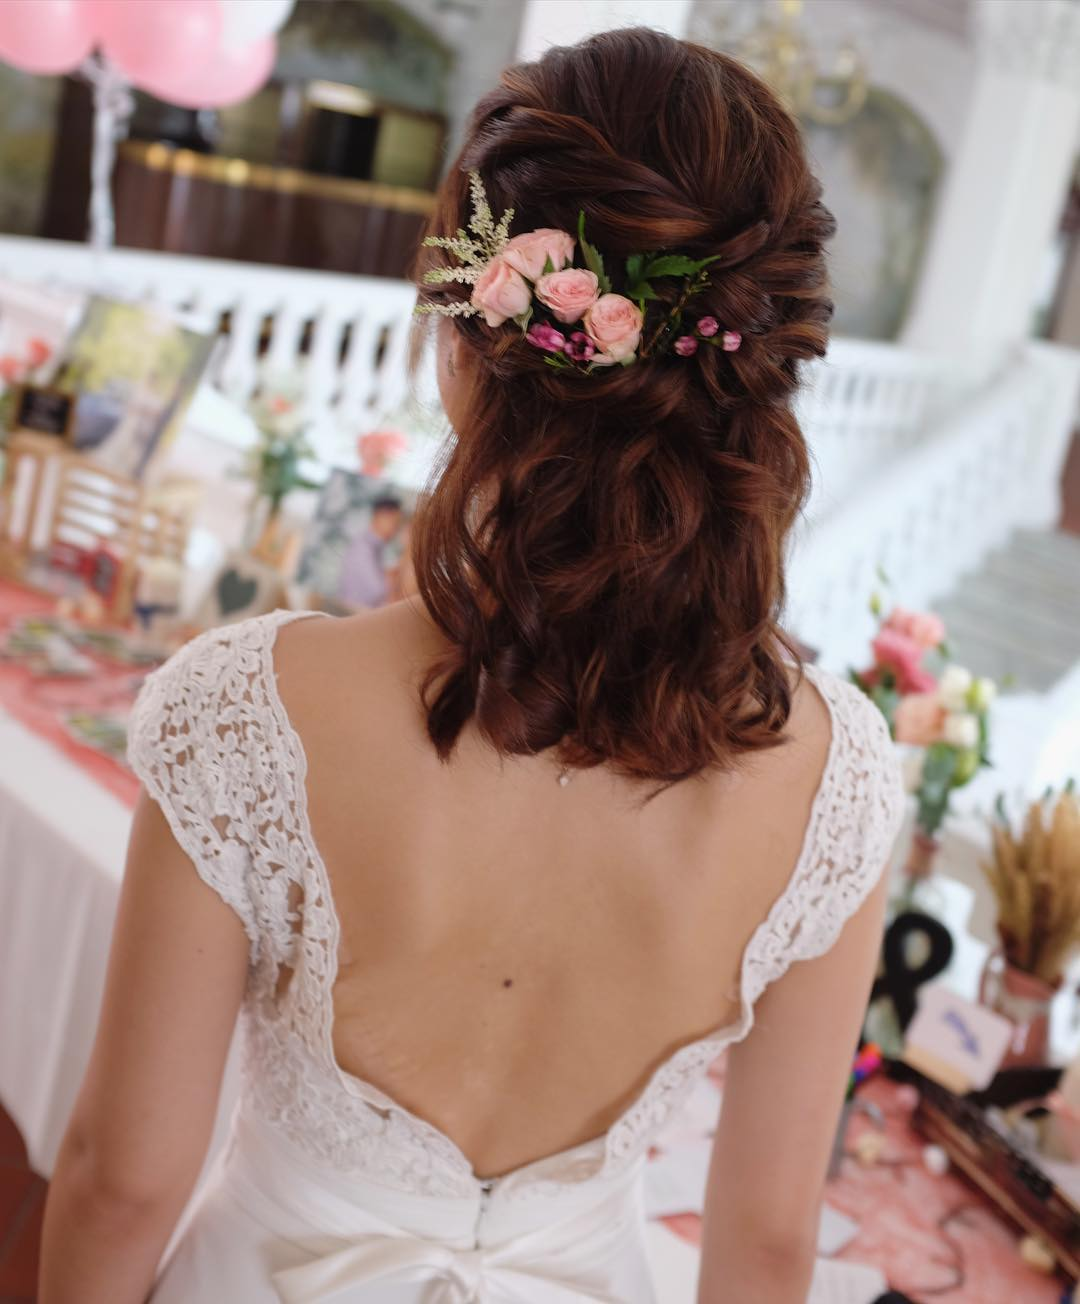 Hairstyle Ideas For Wedding: 30+ Beach Wedding Hairstyles Ideas, Designs